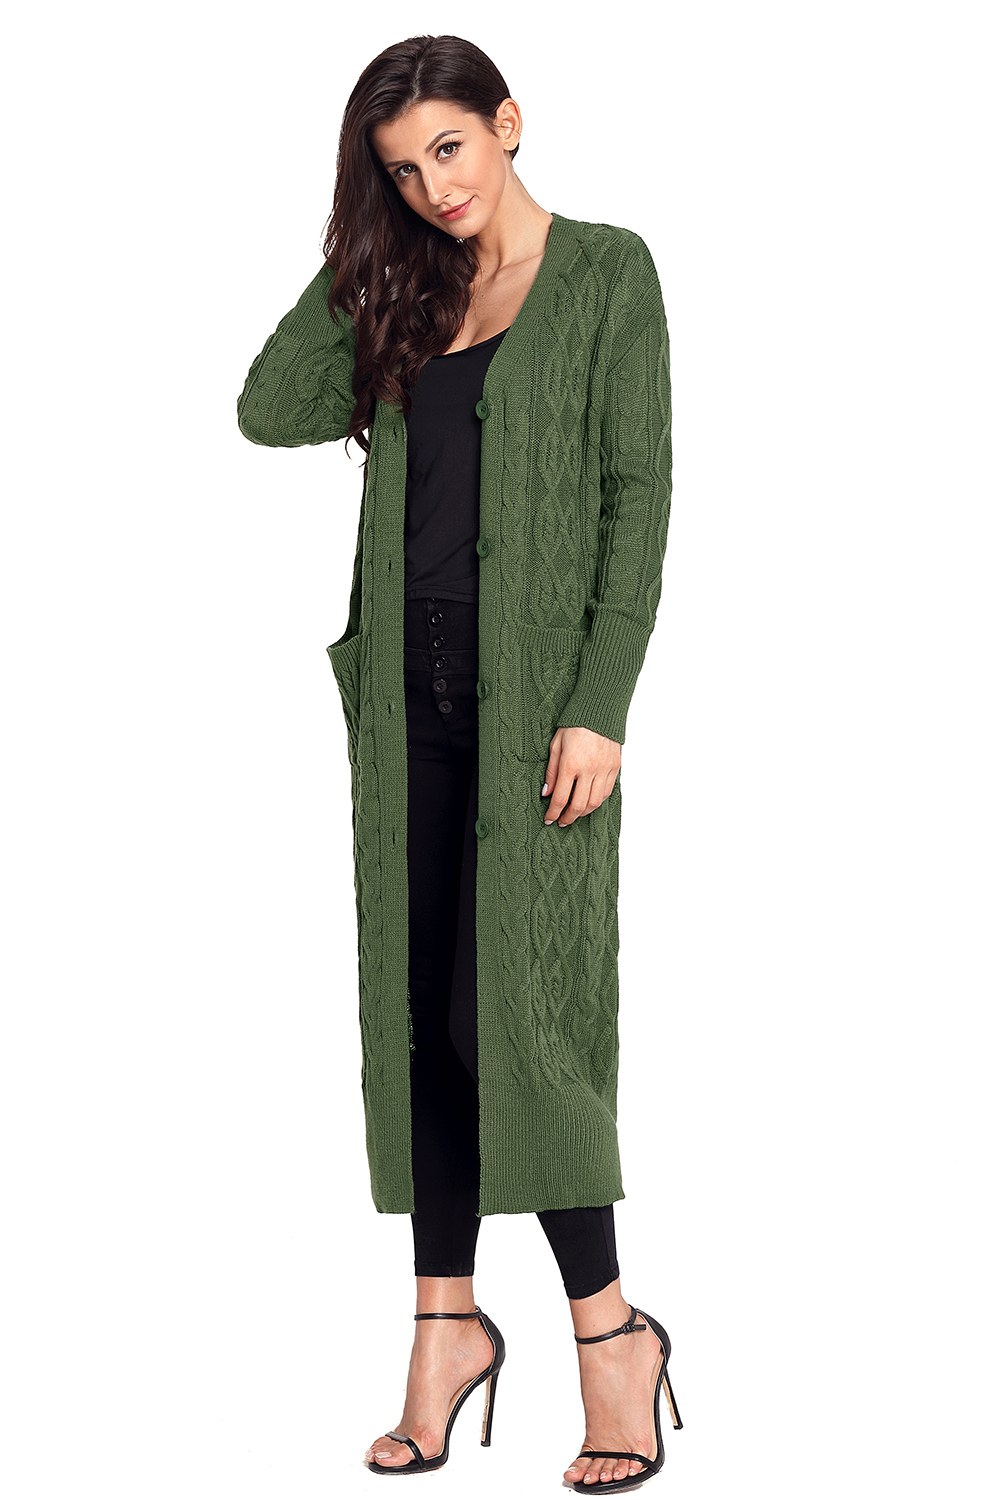 Army Green Knit Long Cardigan Sweater | Charming Wear